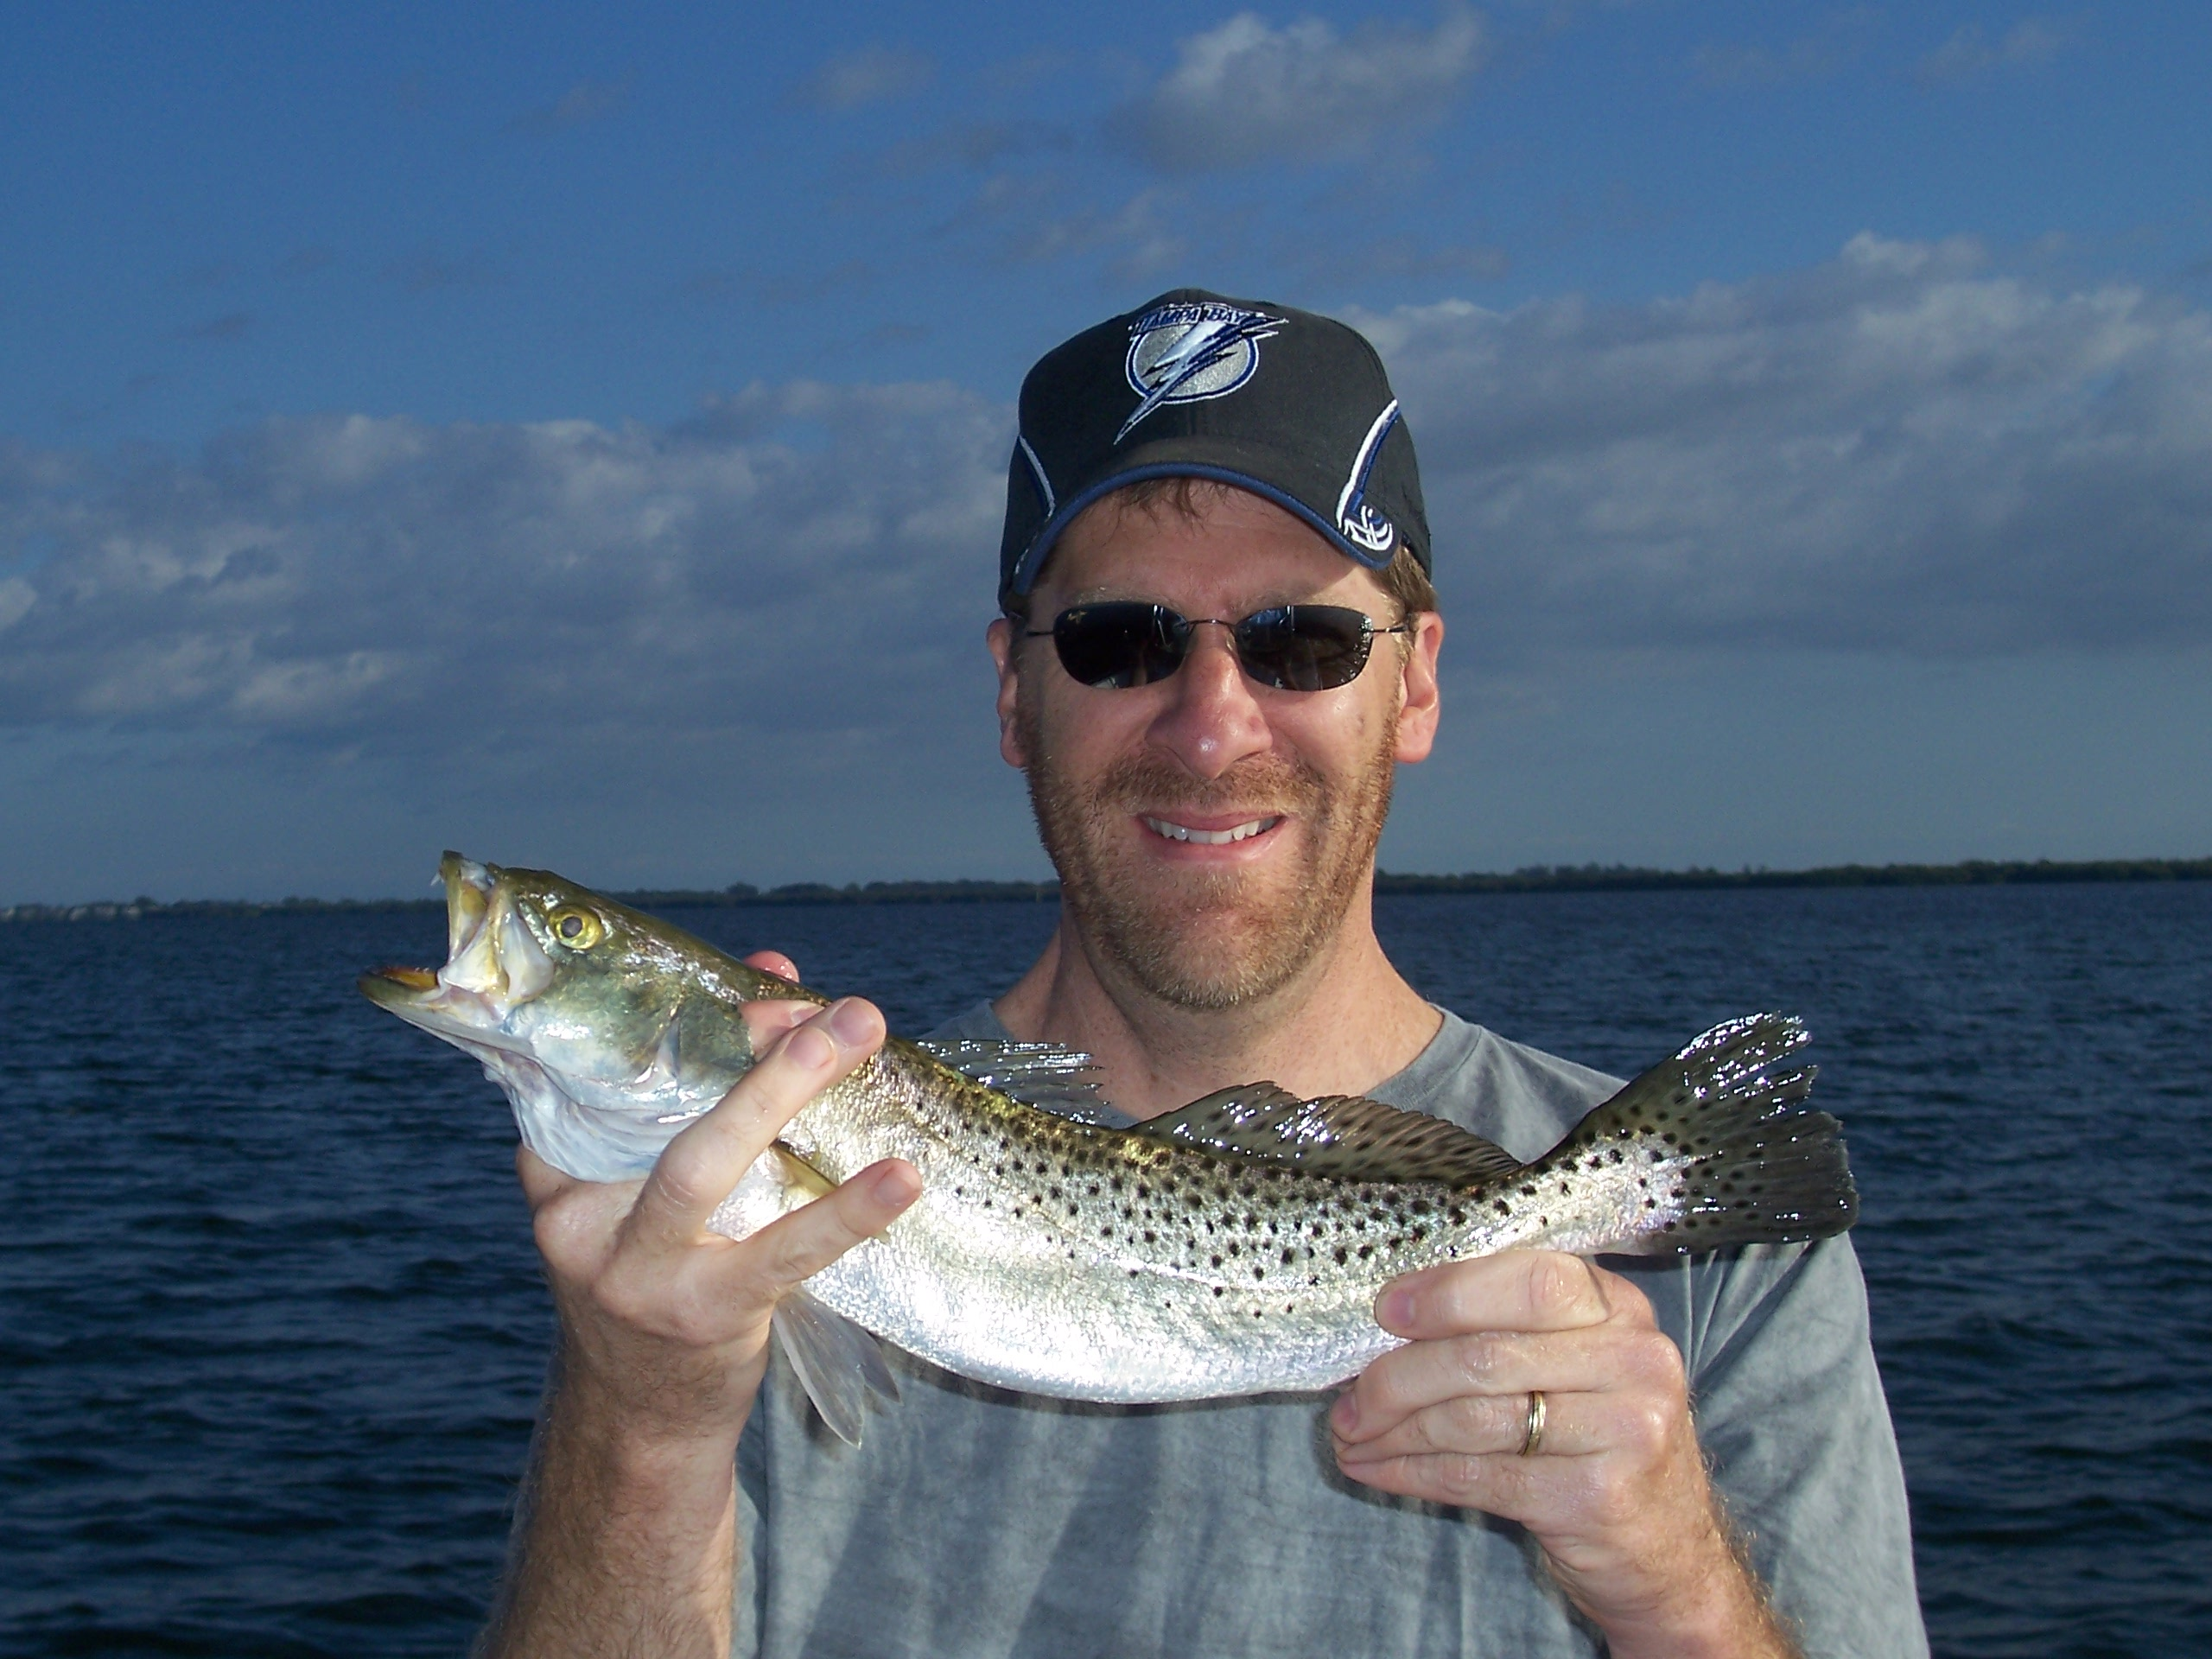 Sarasota florida fishing report rodbender fishing html for Chevy florida fishing report